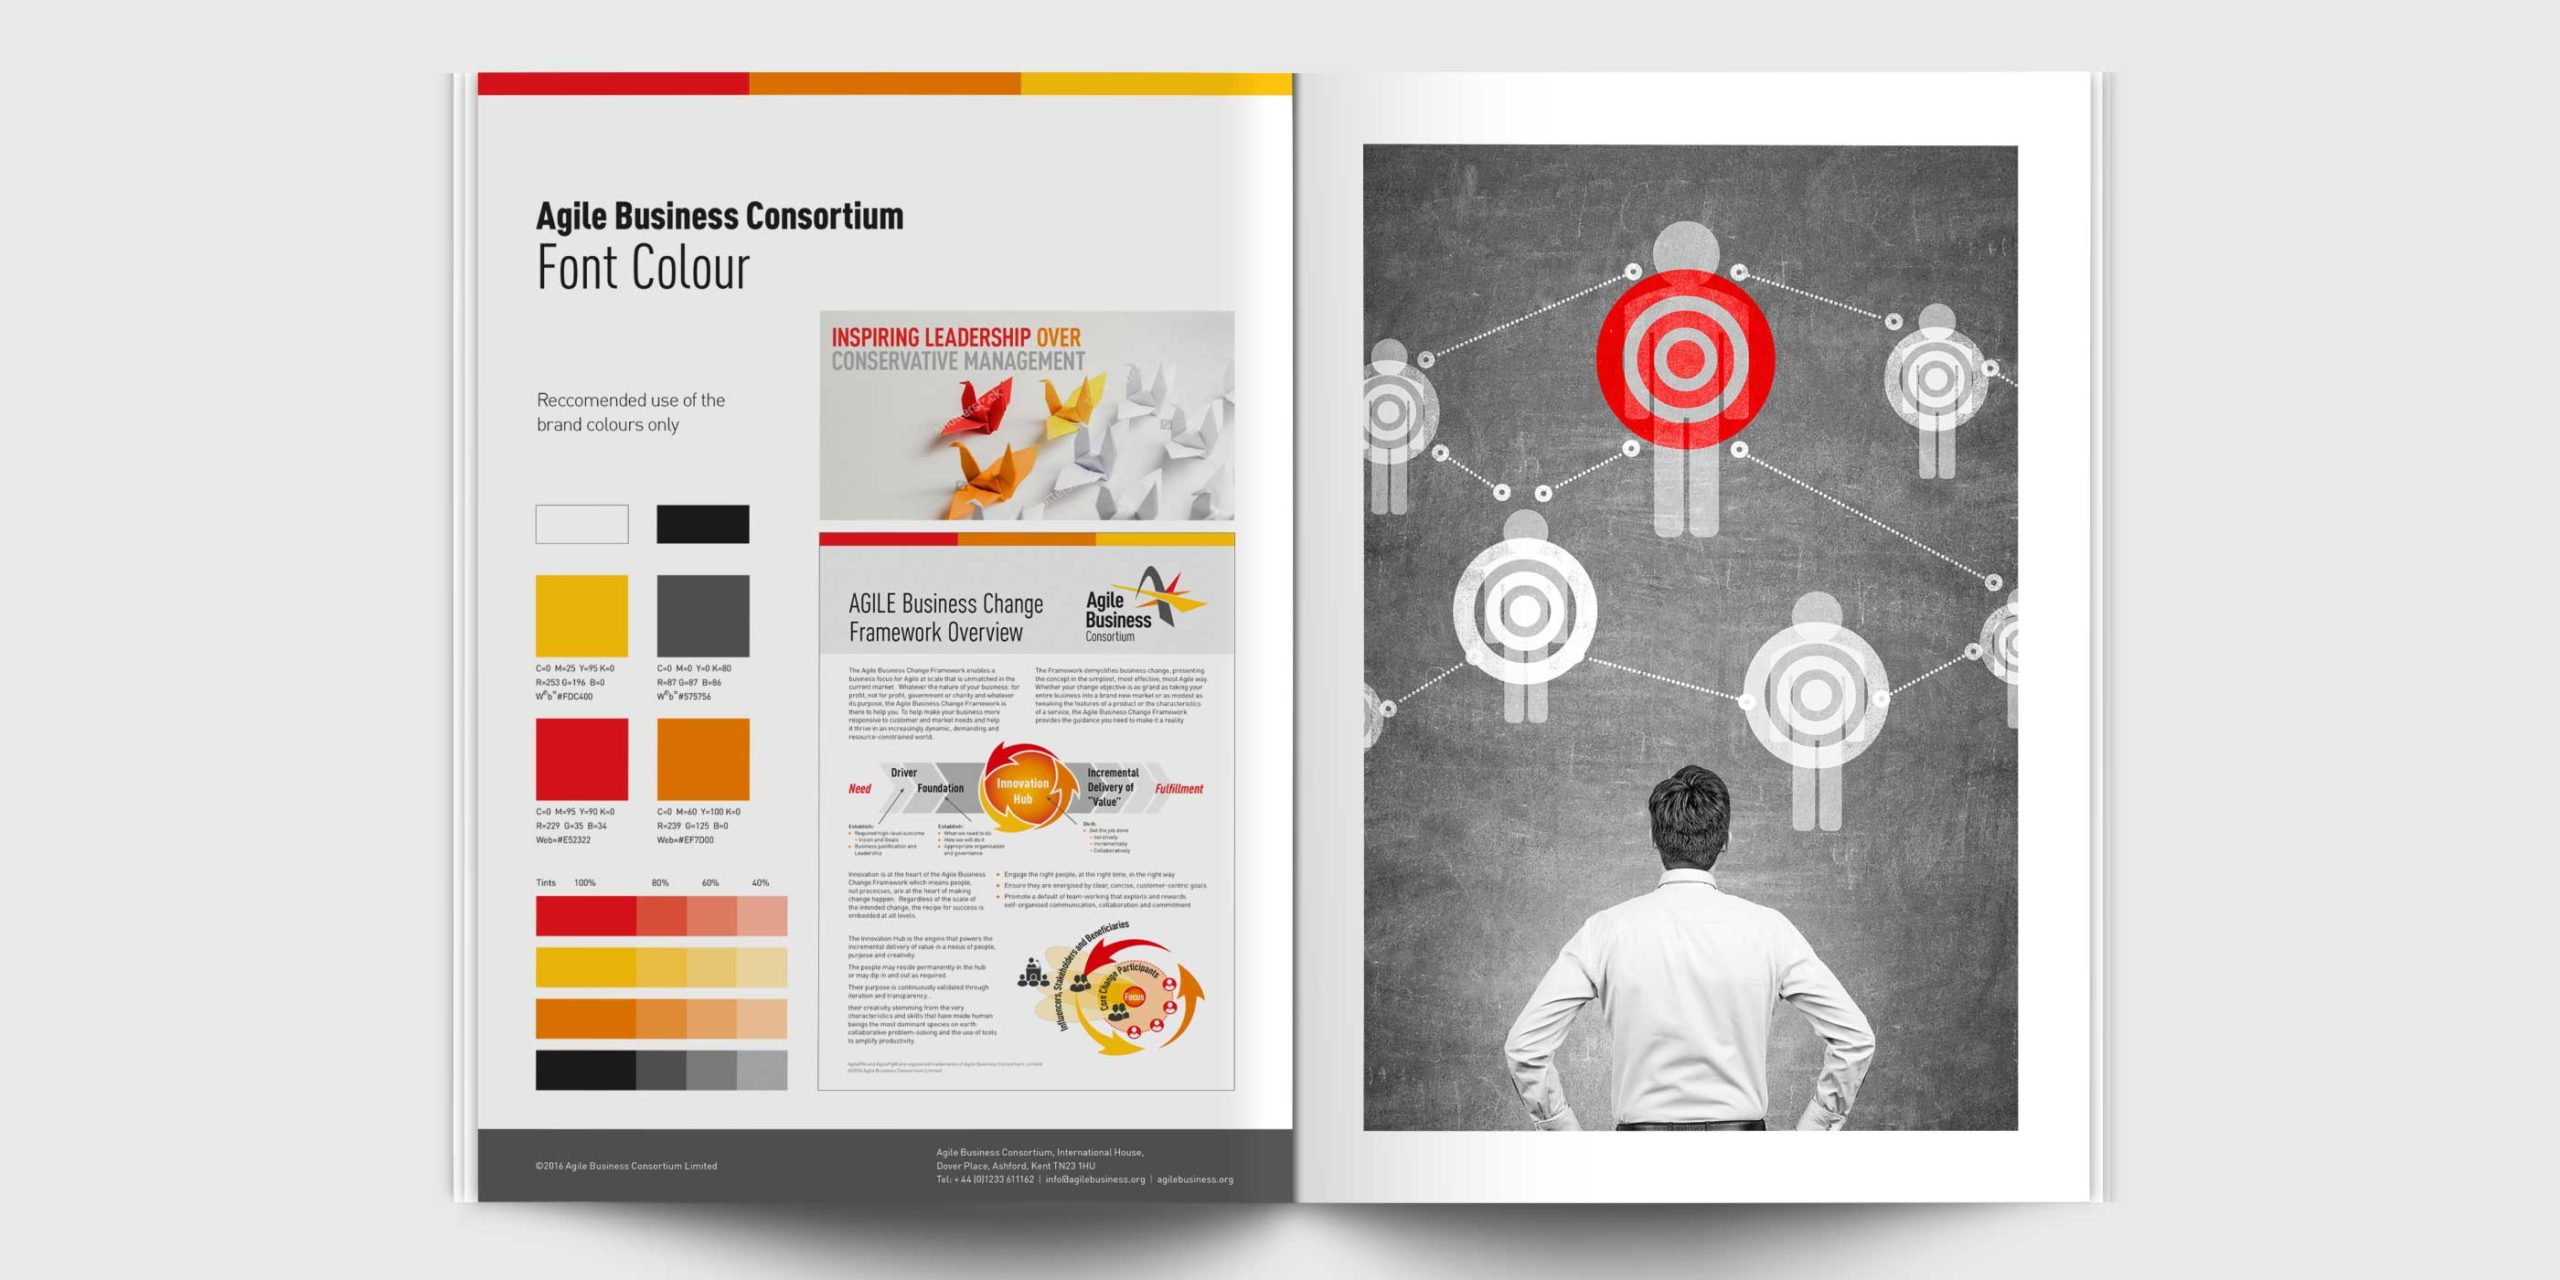 Agile Brand Guidelines - Font and Colour